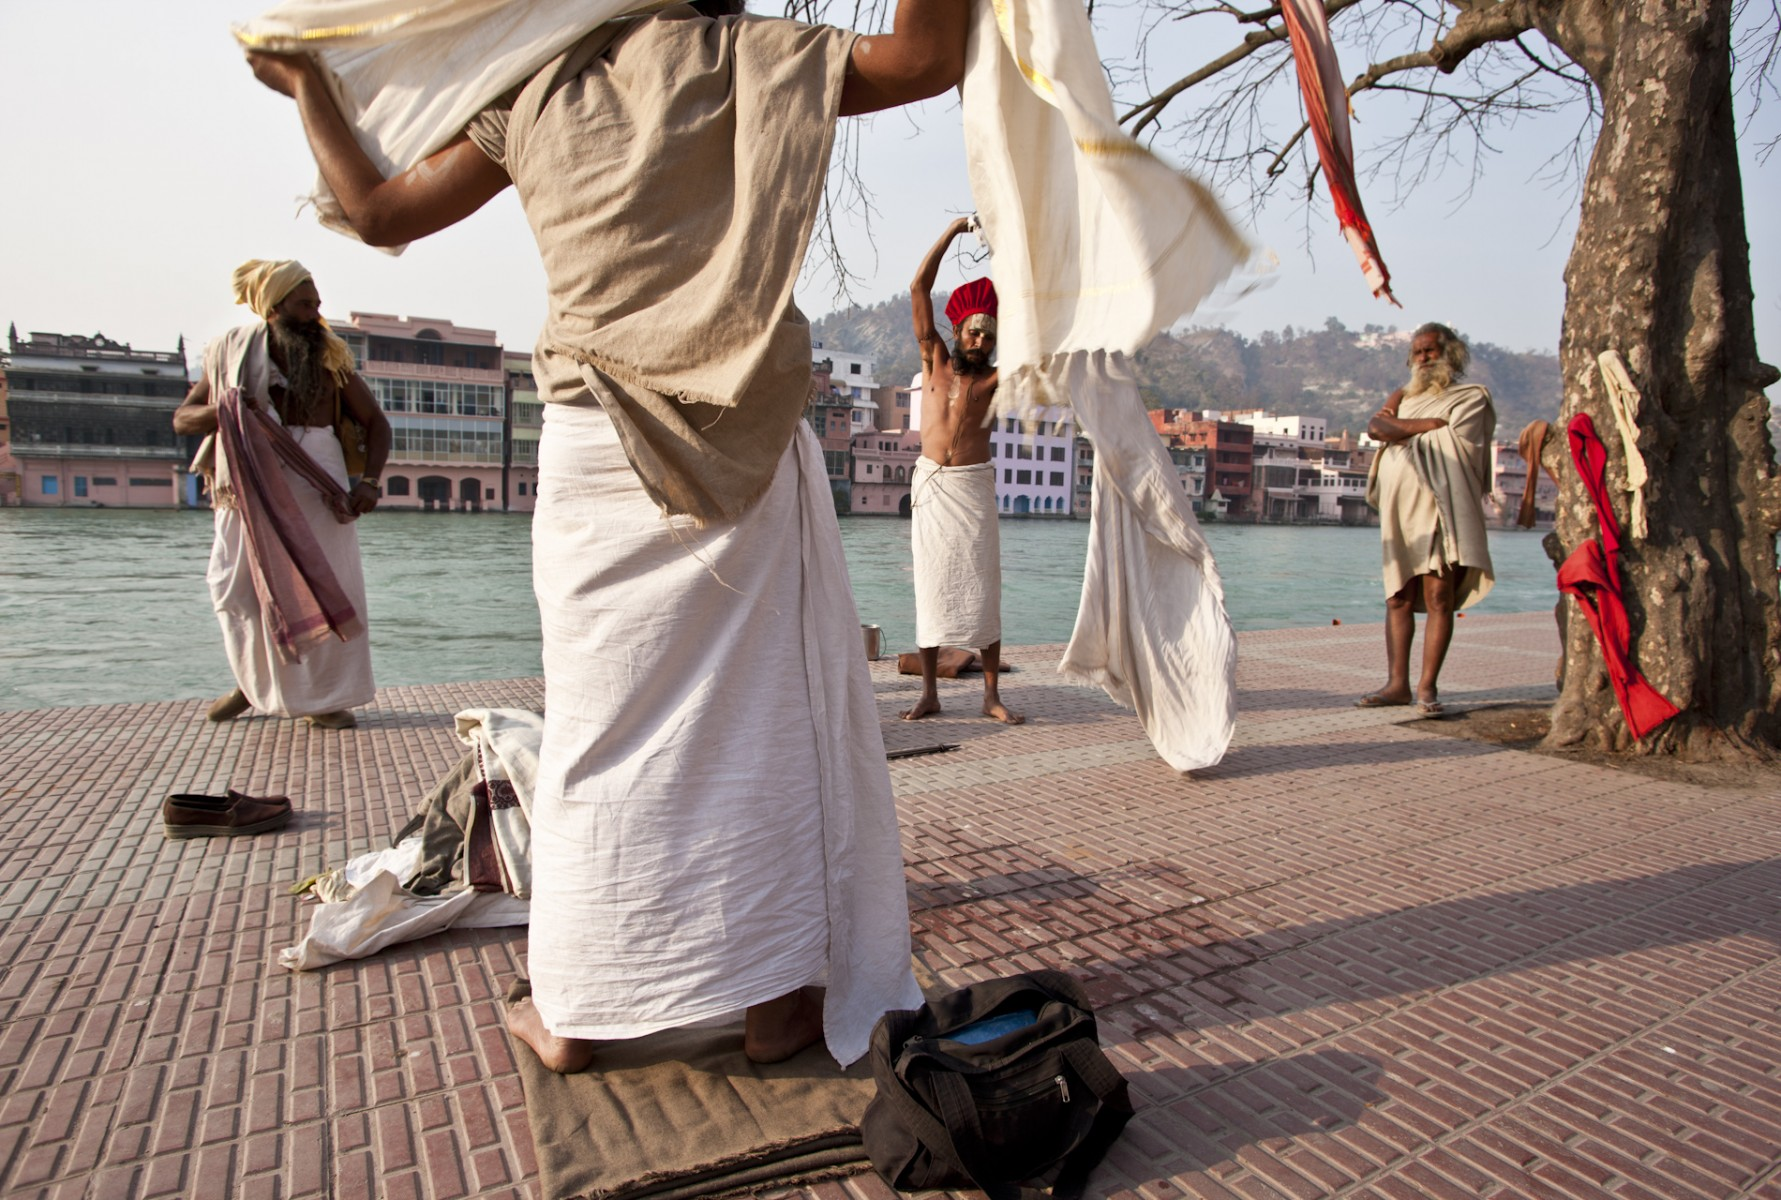 The Ganges at Hardwar, Kumbh Mela, Allahabad